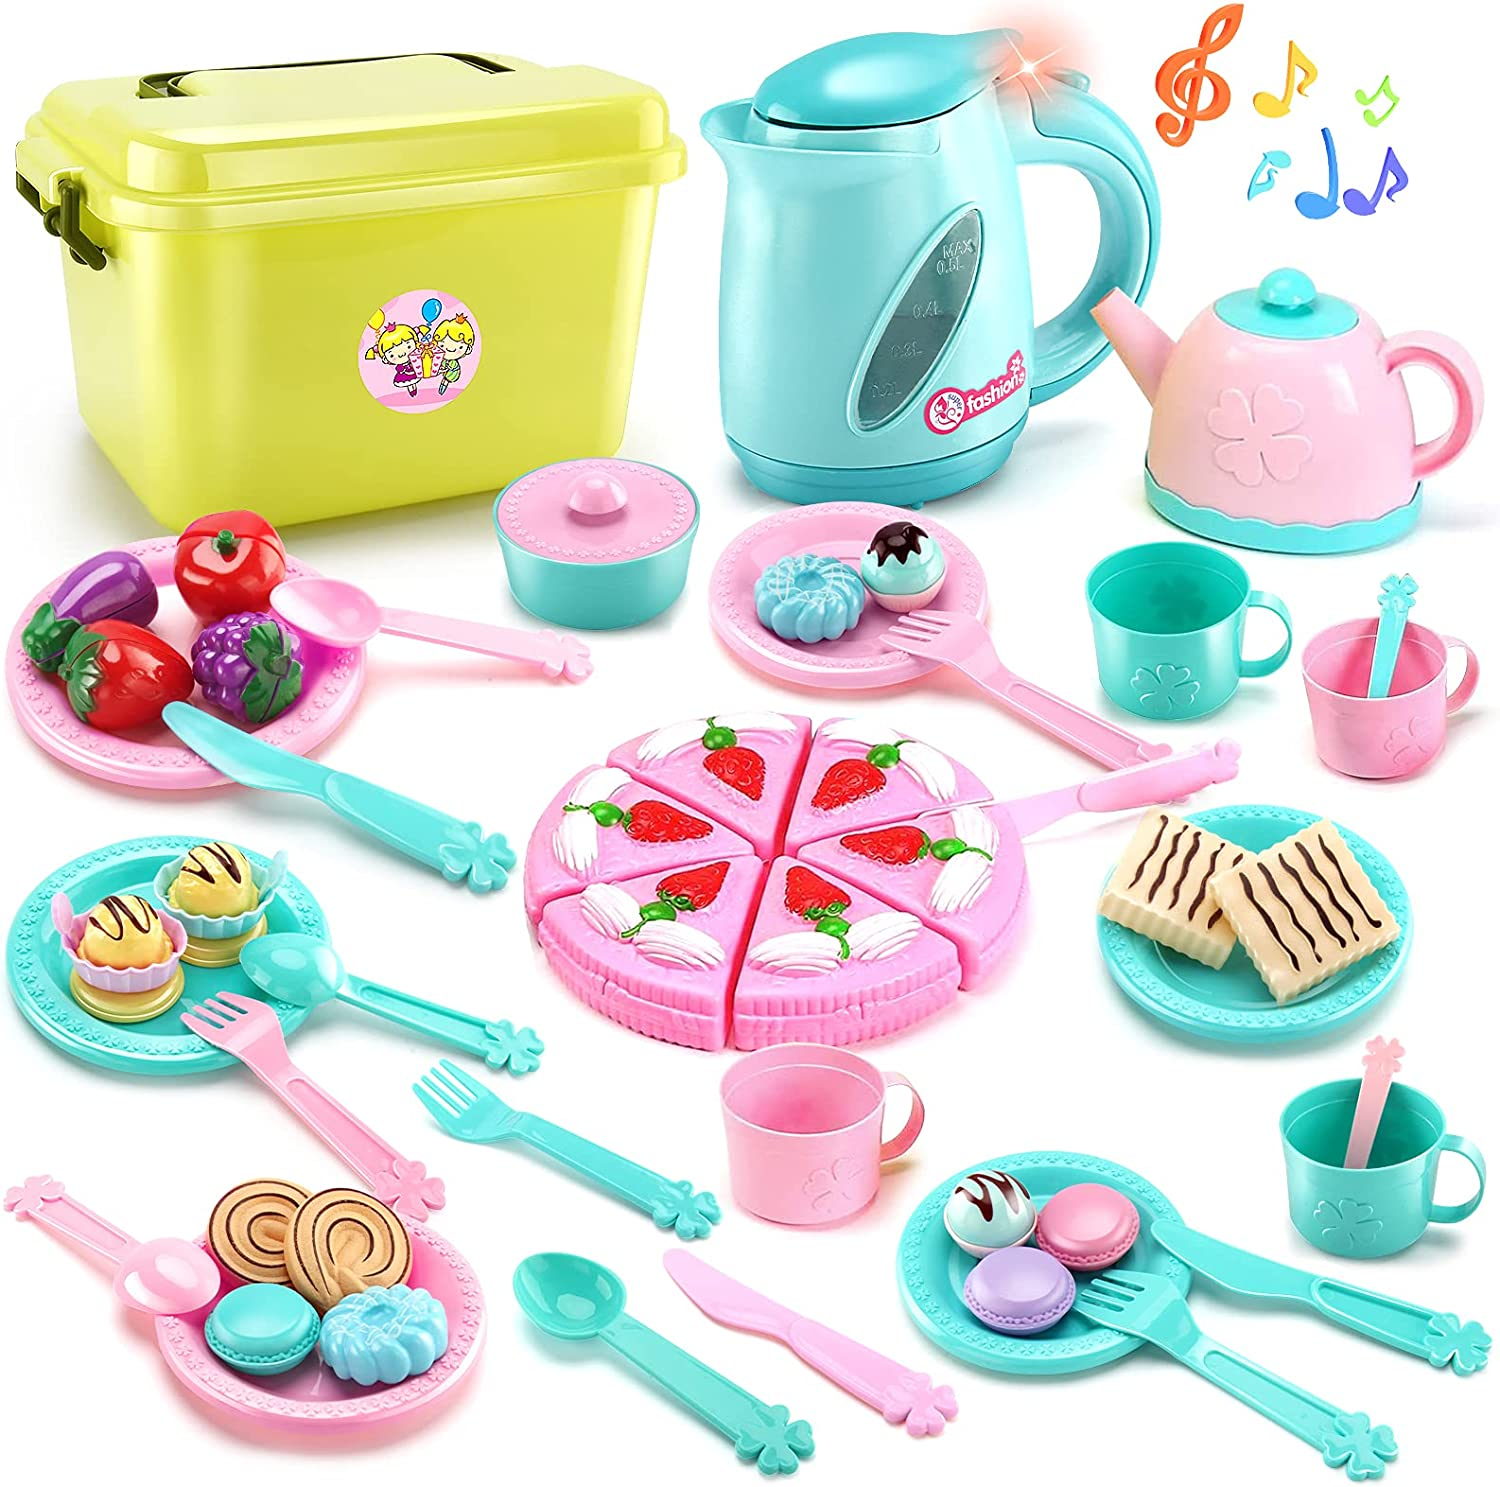 LOVE LIFE 51 Pieces Kid Tea Party Set Play Food Kitchen Cooking Toys for Toddlers Girls Boys 3 4 5 6 7 Years Old Early Development and Educational Pretend Play Food Set